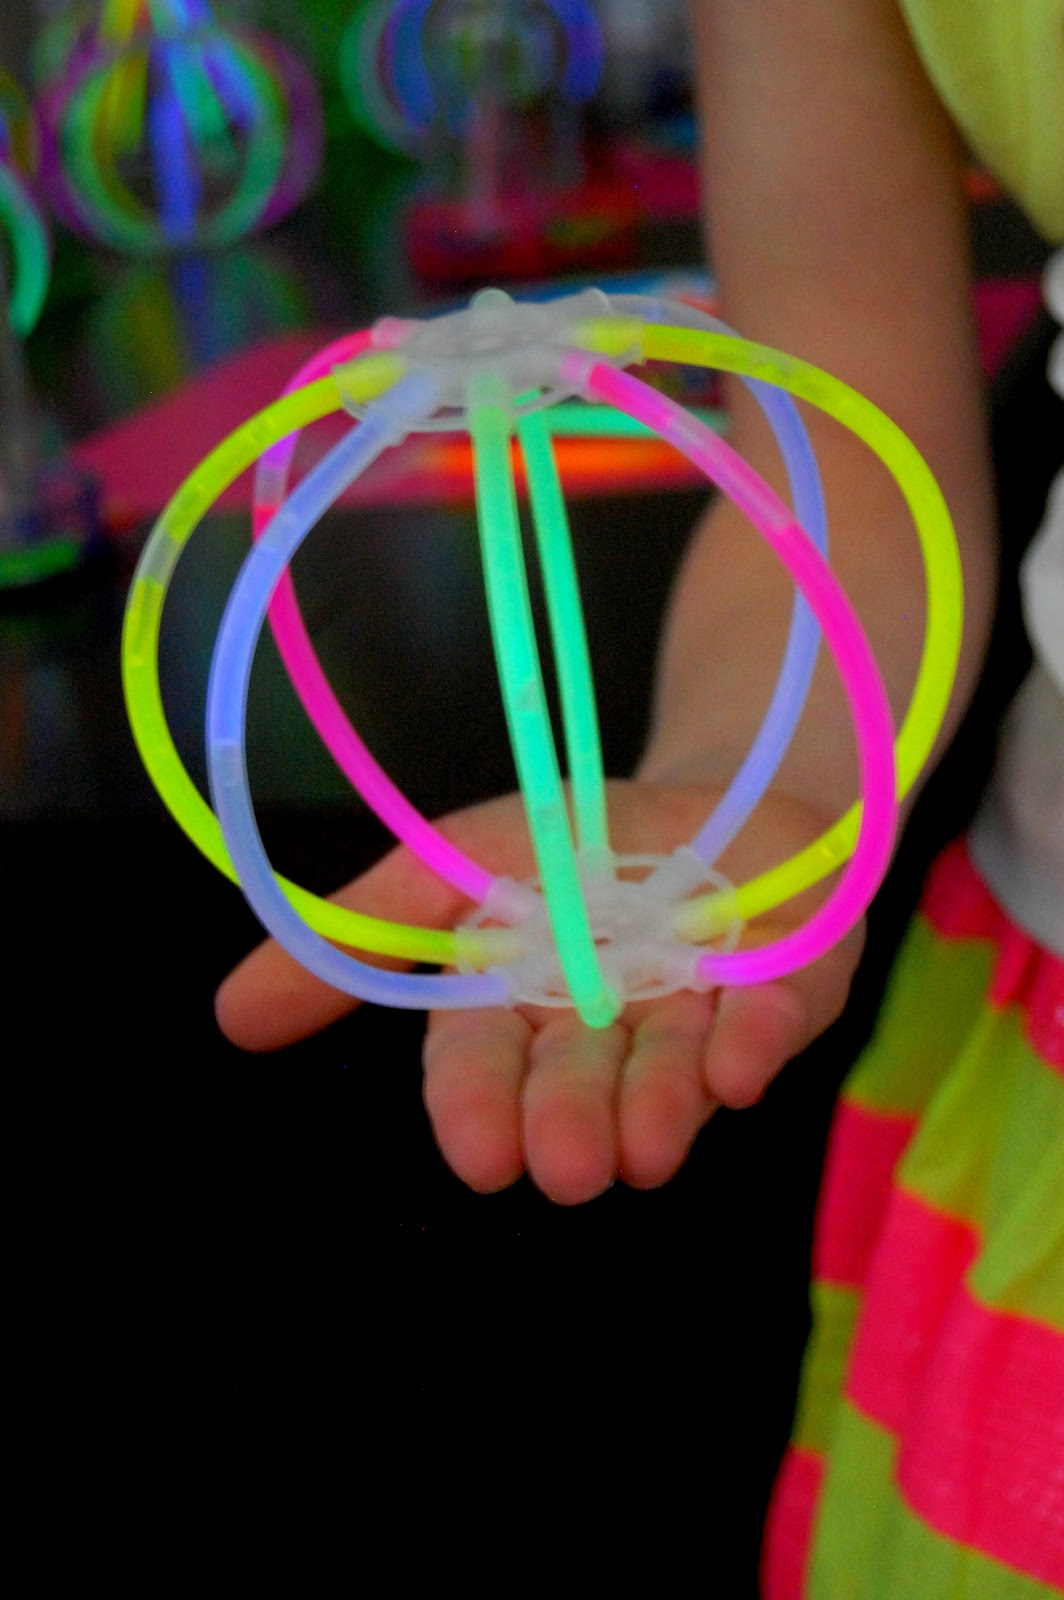 Simply Creative Insanity Totally Coolneon Glow Party-8587